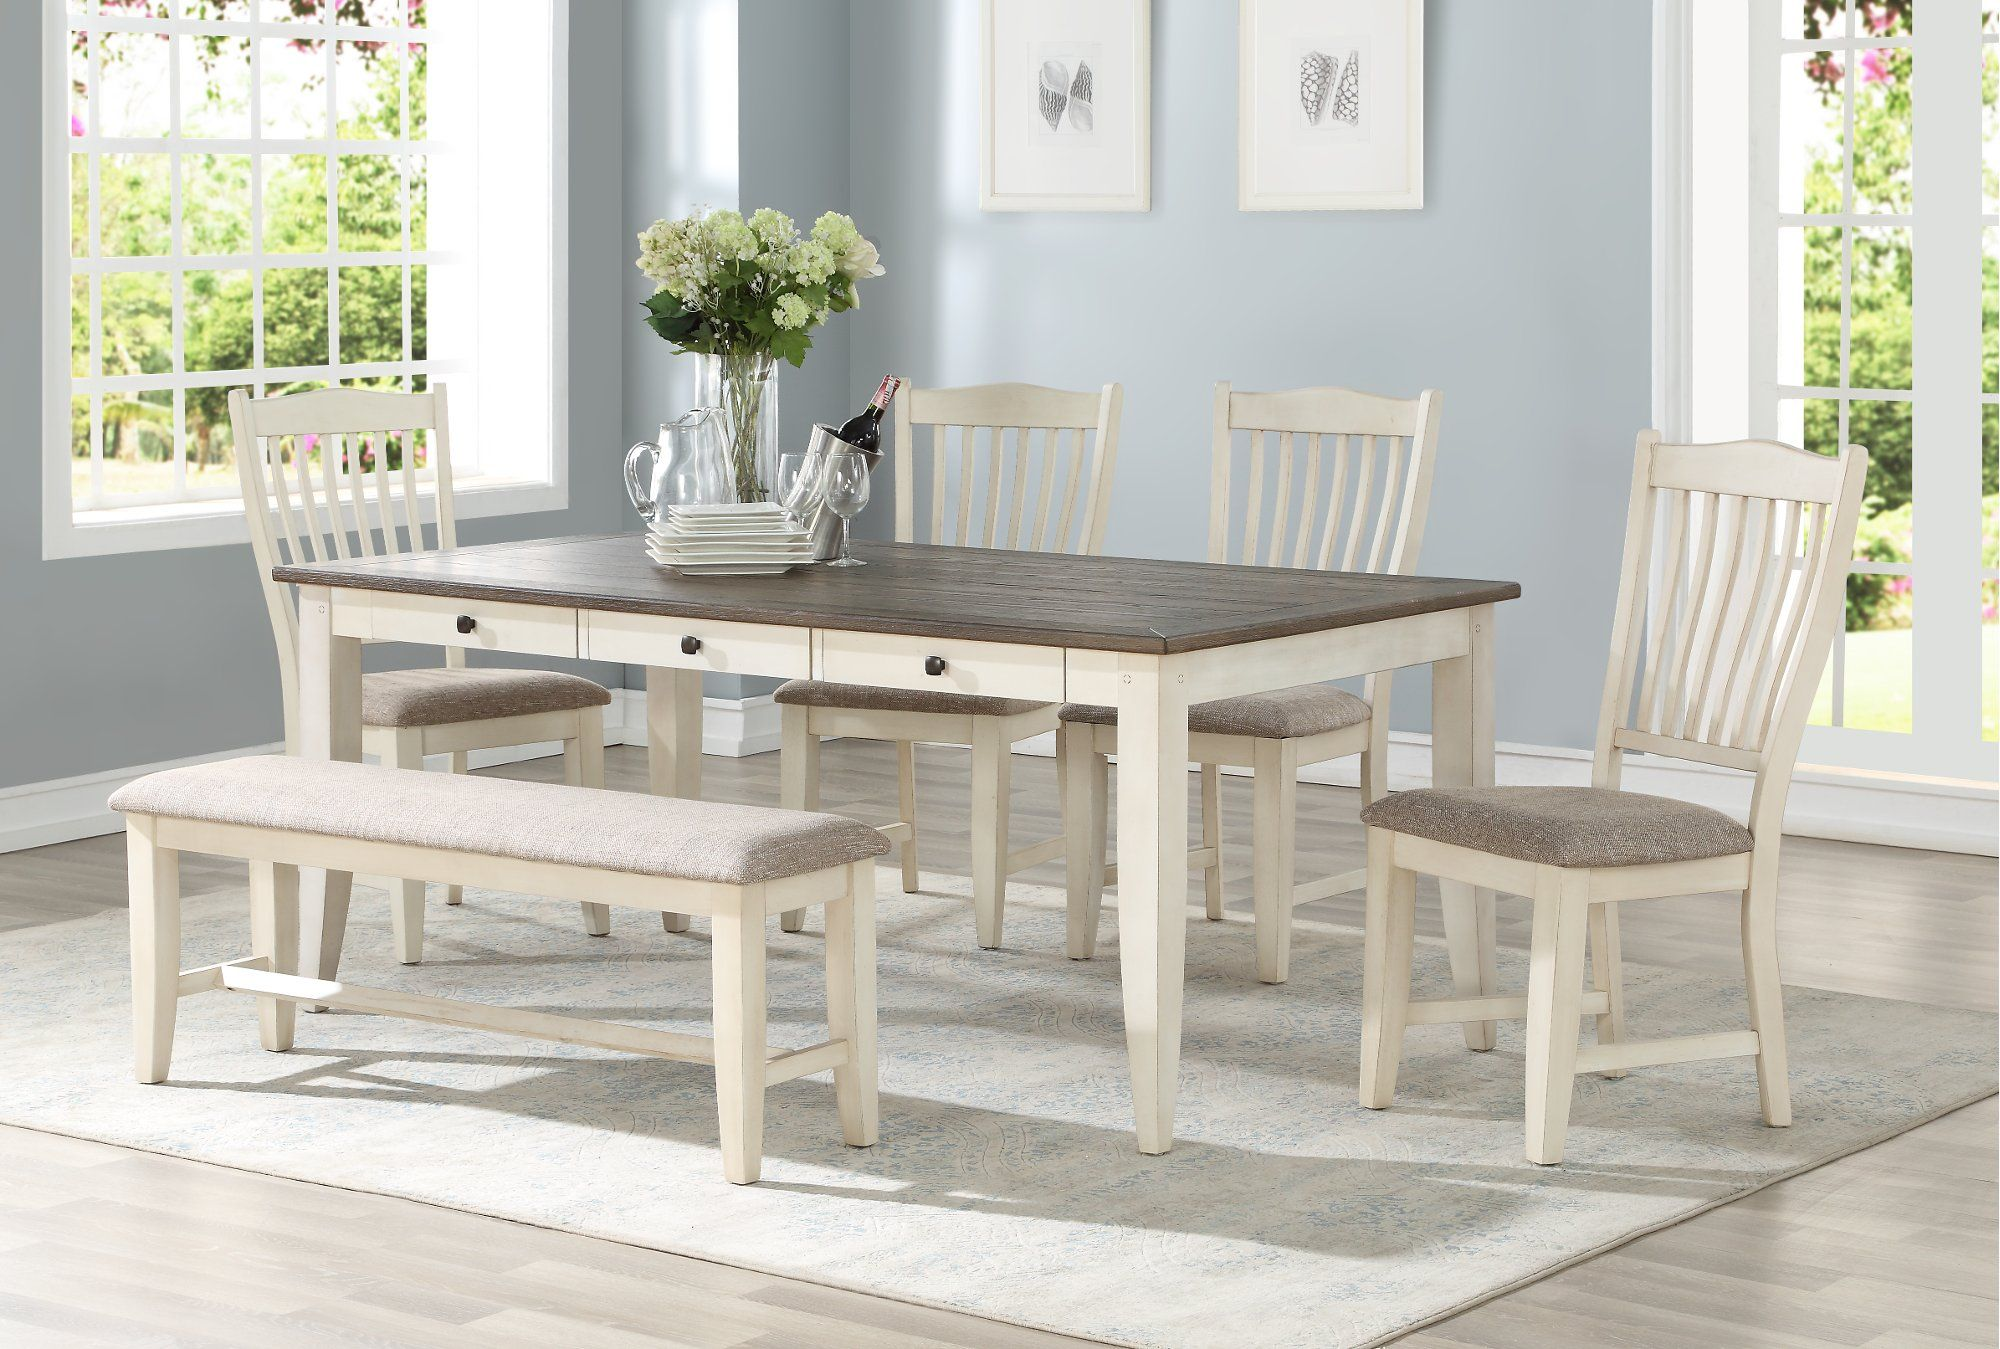 White and Gray 9 Piece Dining Set   Grace   RC Willey Furniture ...